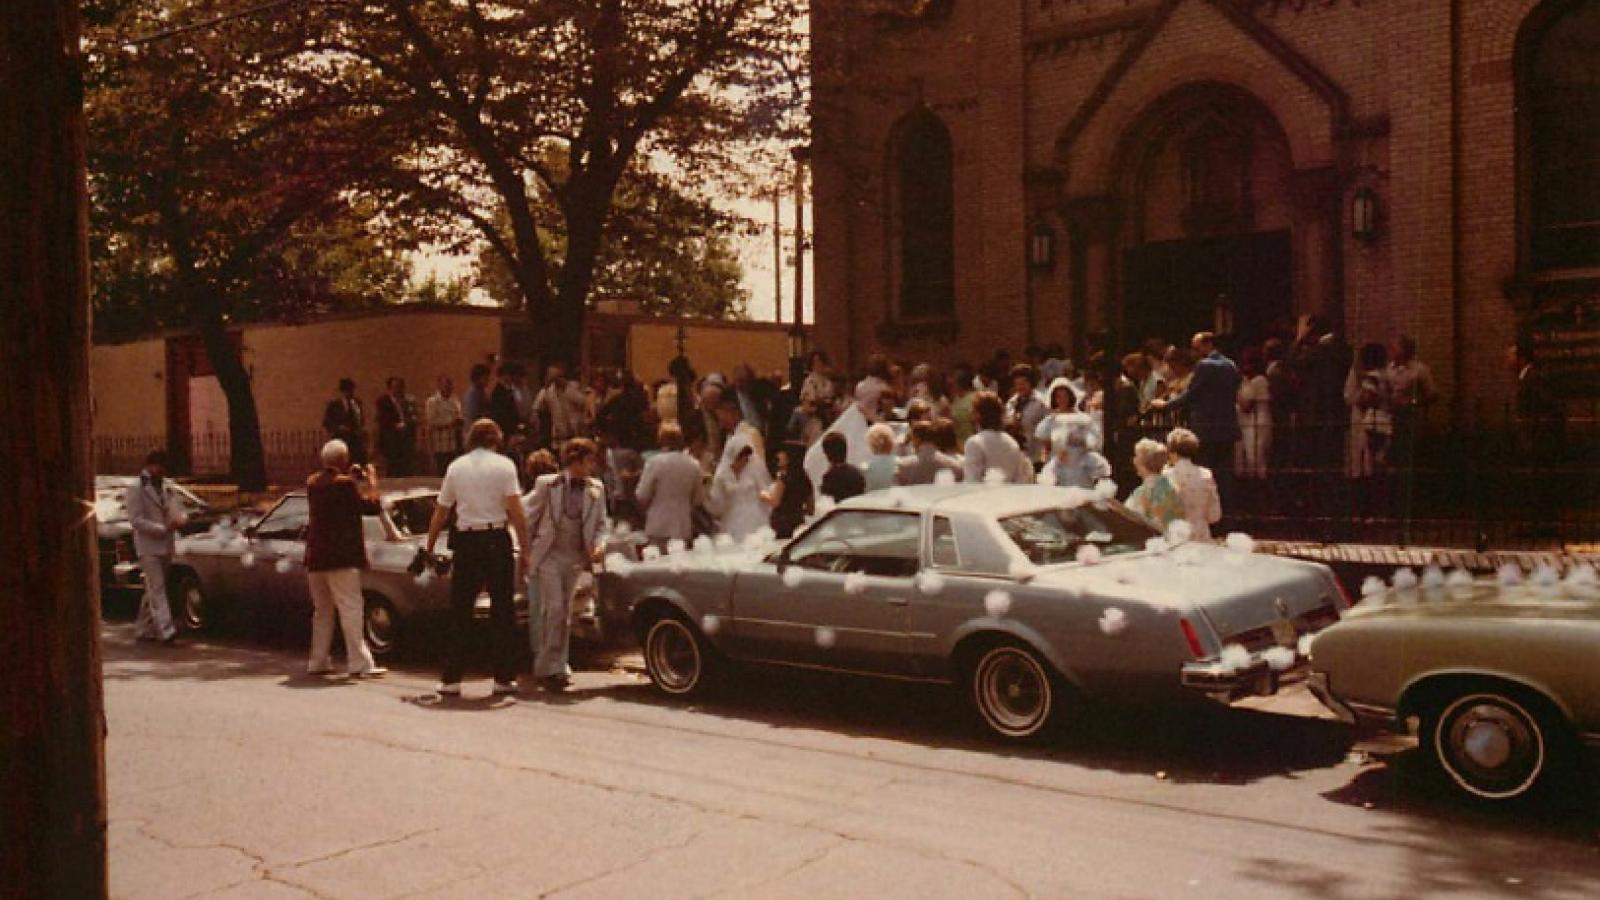 Wedding at St. Theodosius Russian Orthodox Cathedral, Cleveland, July 23, 1977.